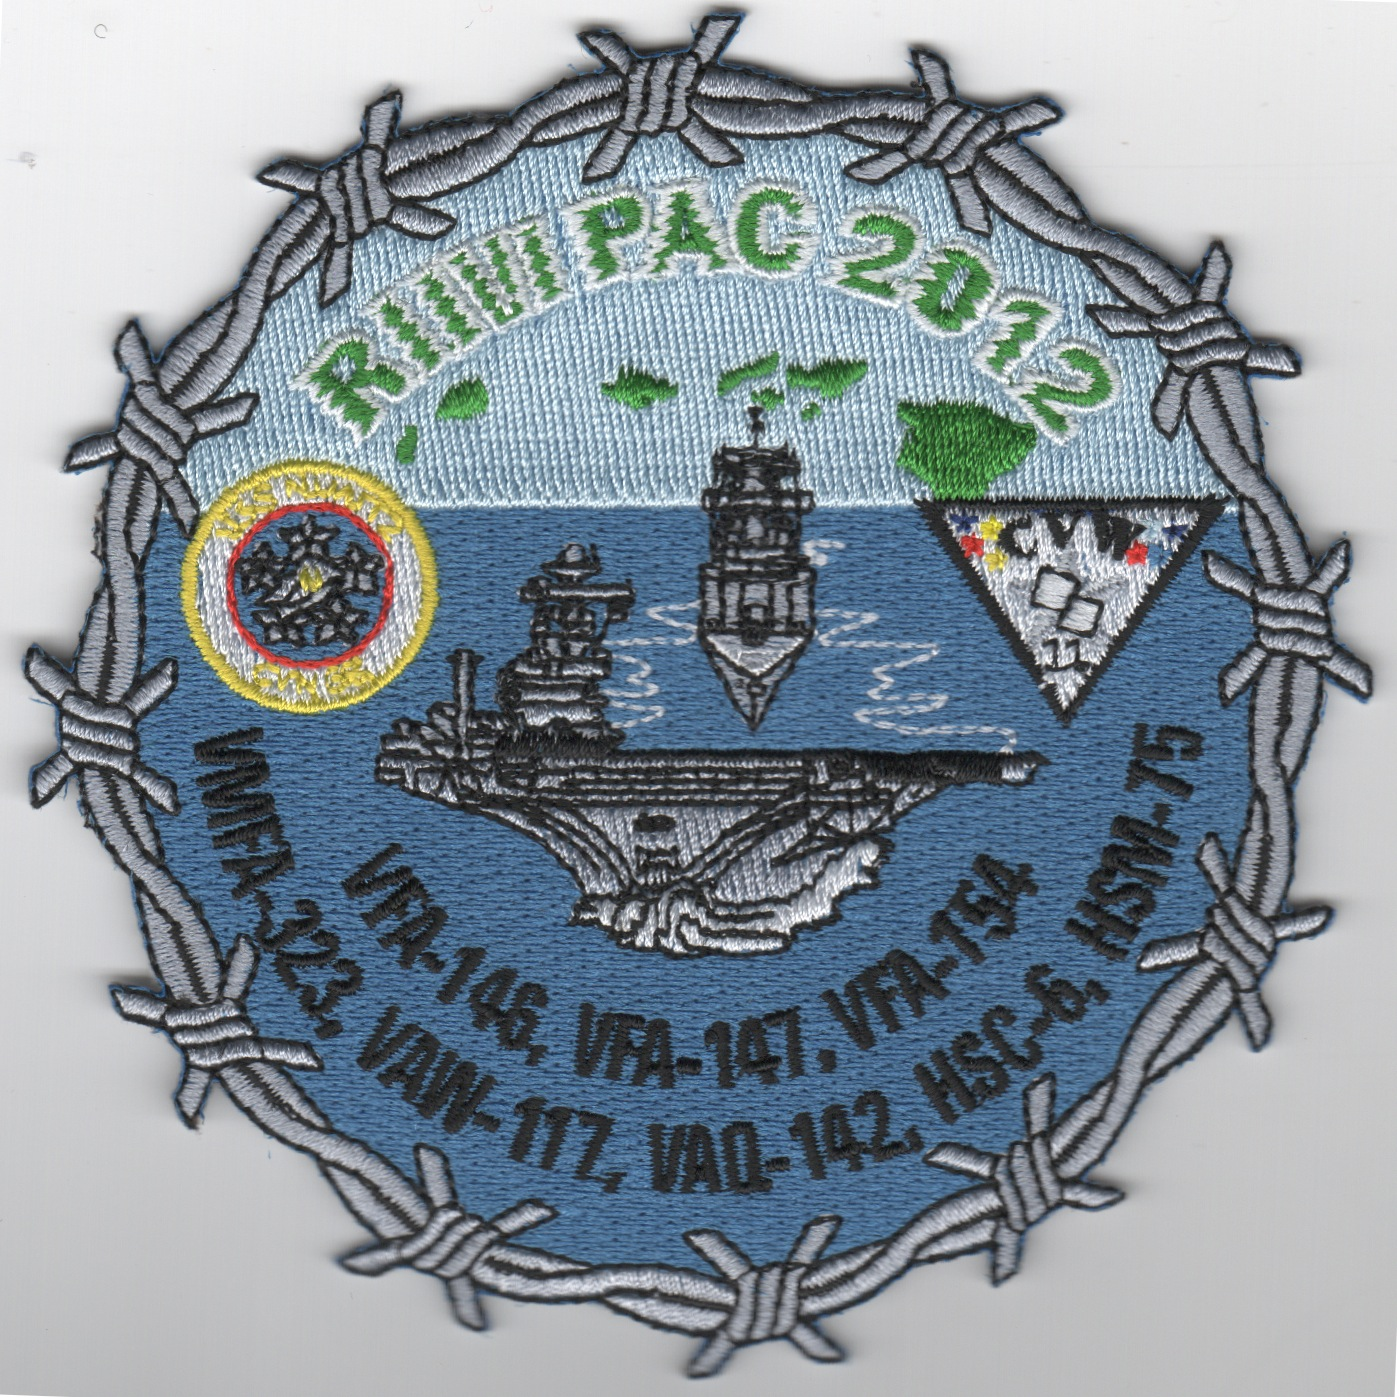 CVN-68/CVW-11 2012 'RIMPAC' Cruise Patch (Round)